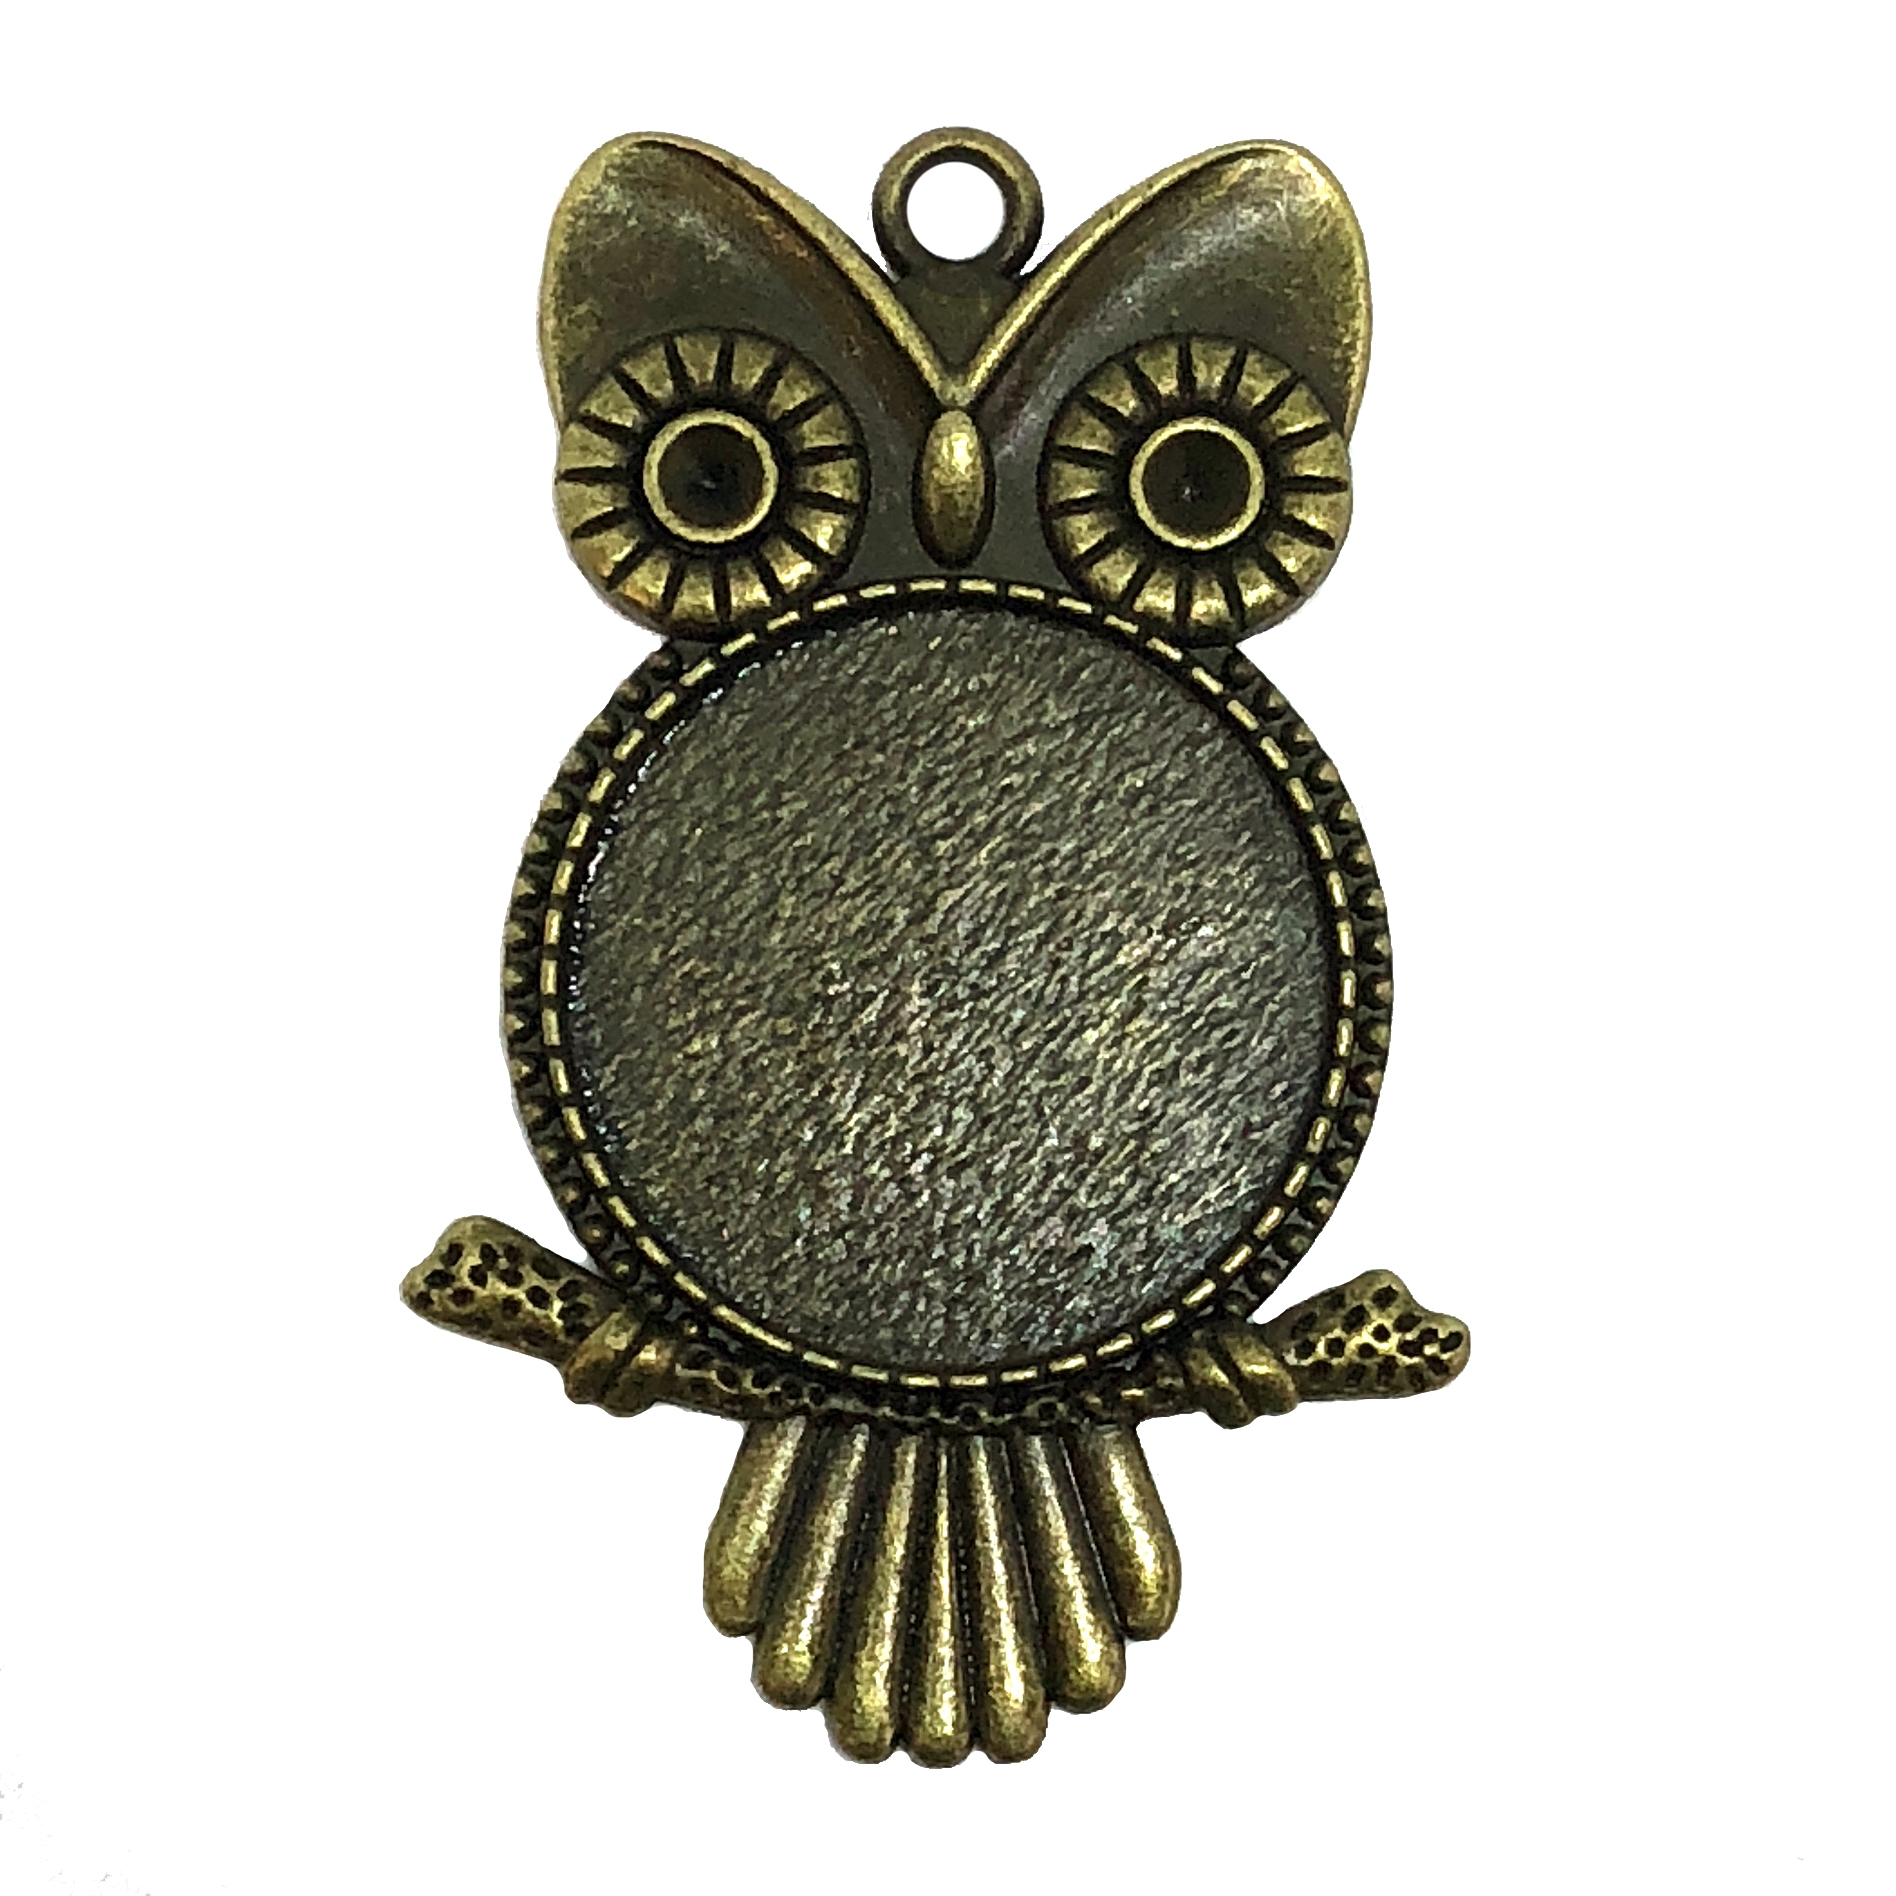 owl charms, owl pendant, stamping, 07873, jewelry supplies, B'sue Boutiques, US made jewelry parts, jewelry findings, bird jewelry, charm, pendant, birds, owl